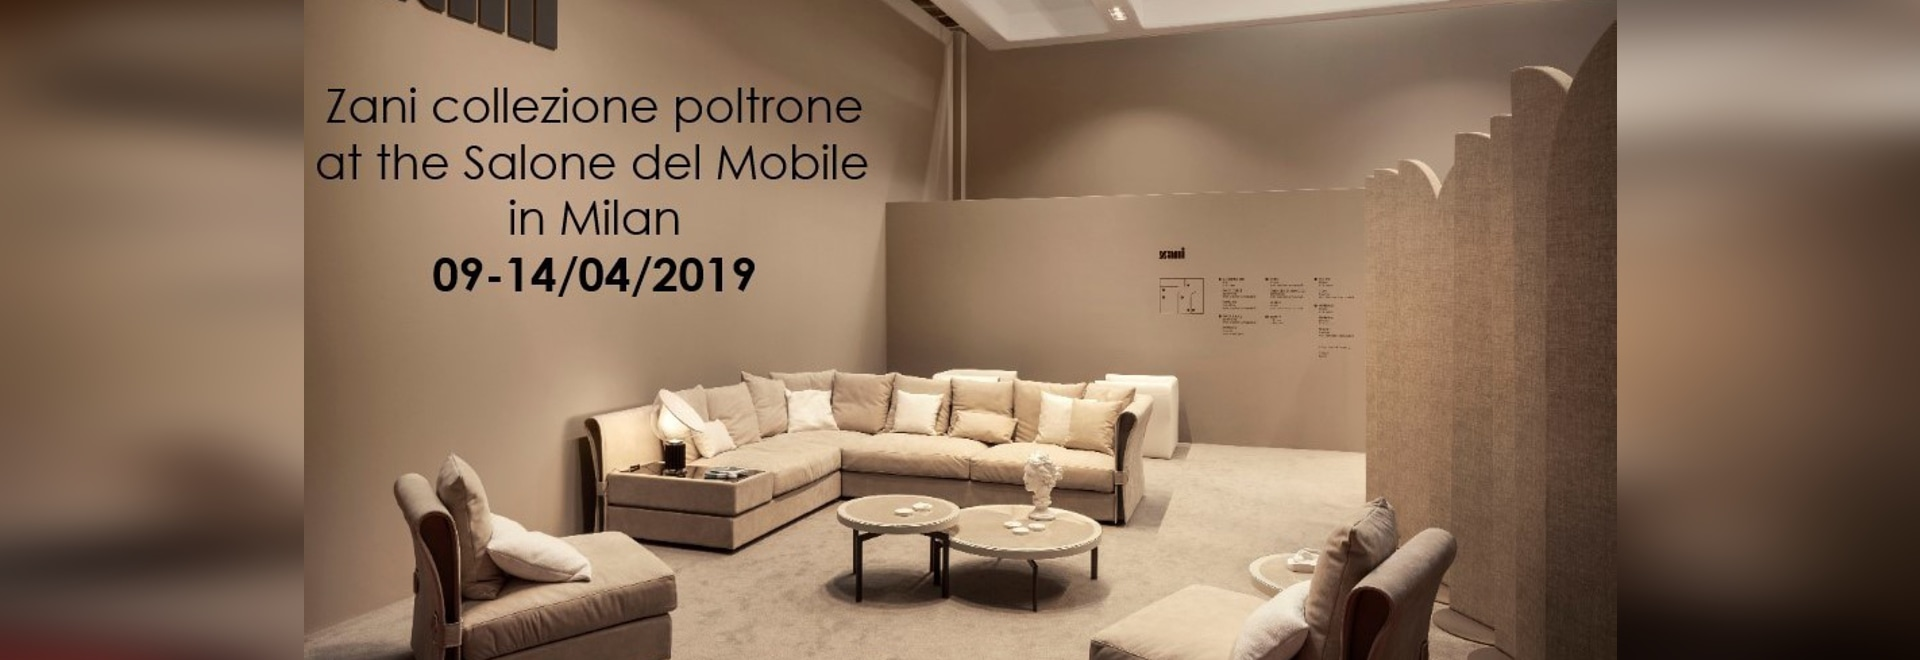 Zani Collezione Poltrone at the Salone del Mobile in Milan 09-14/04/2019